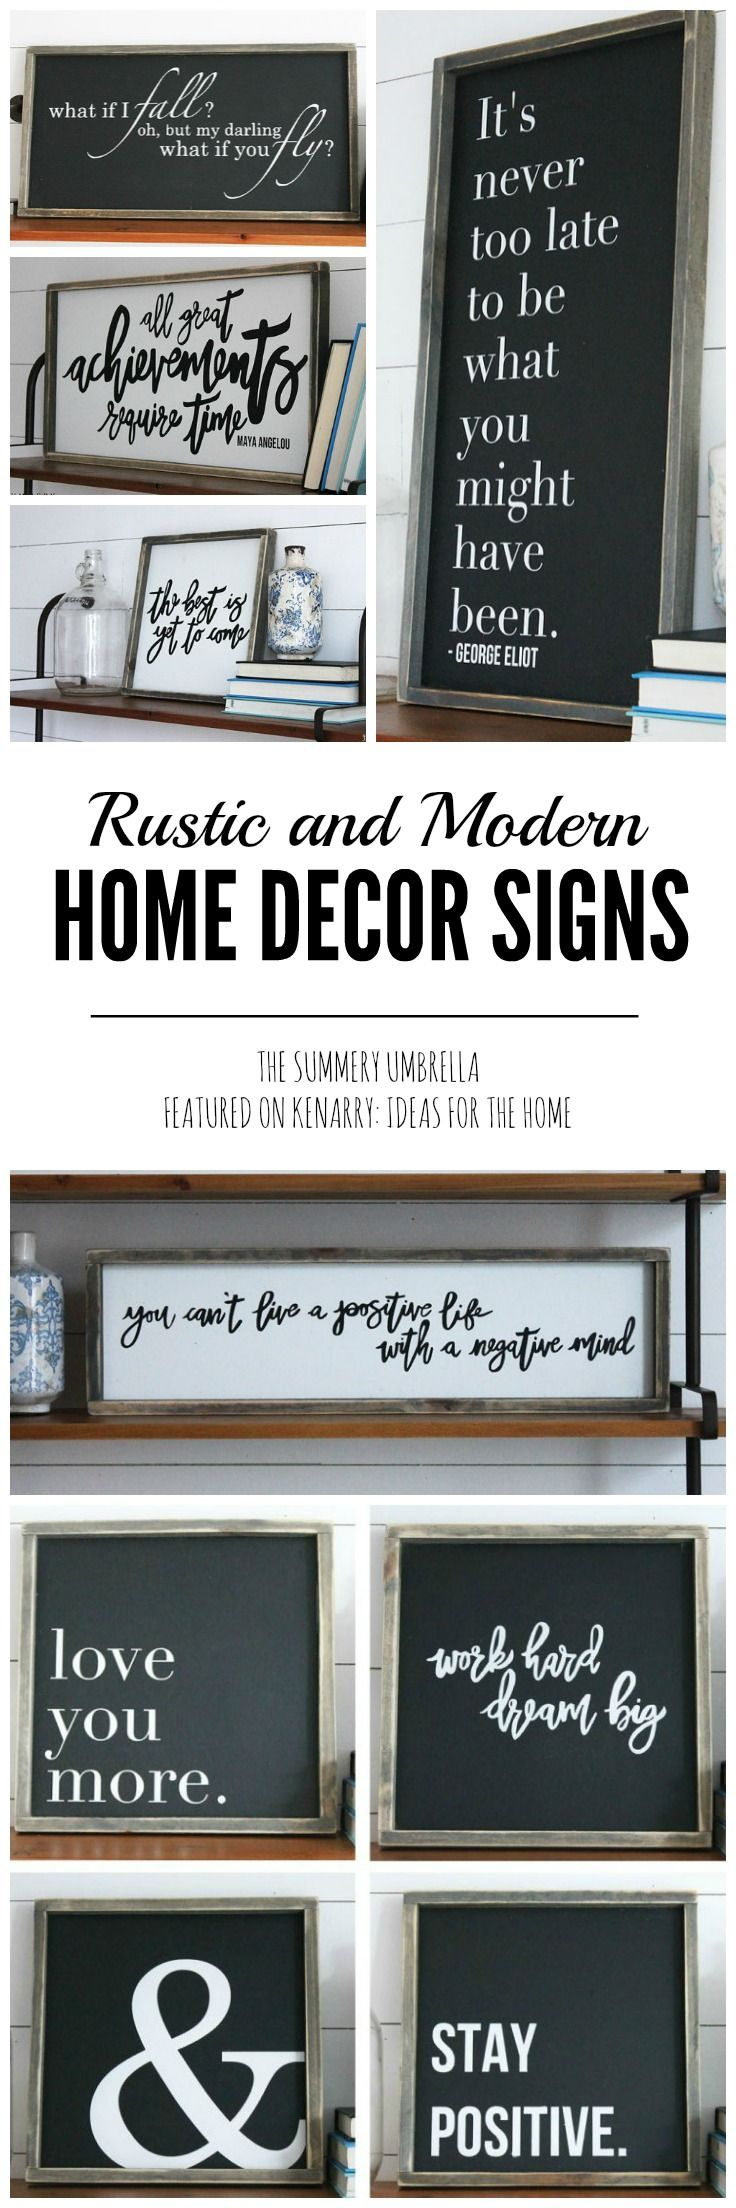 Wall Decor Signs For Home Amusing Best 25 Wall Signs Ideas On Pinterest  Diy Signs Decor For Design Ideas